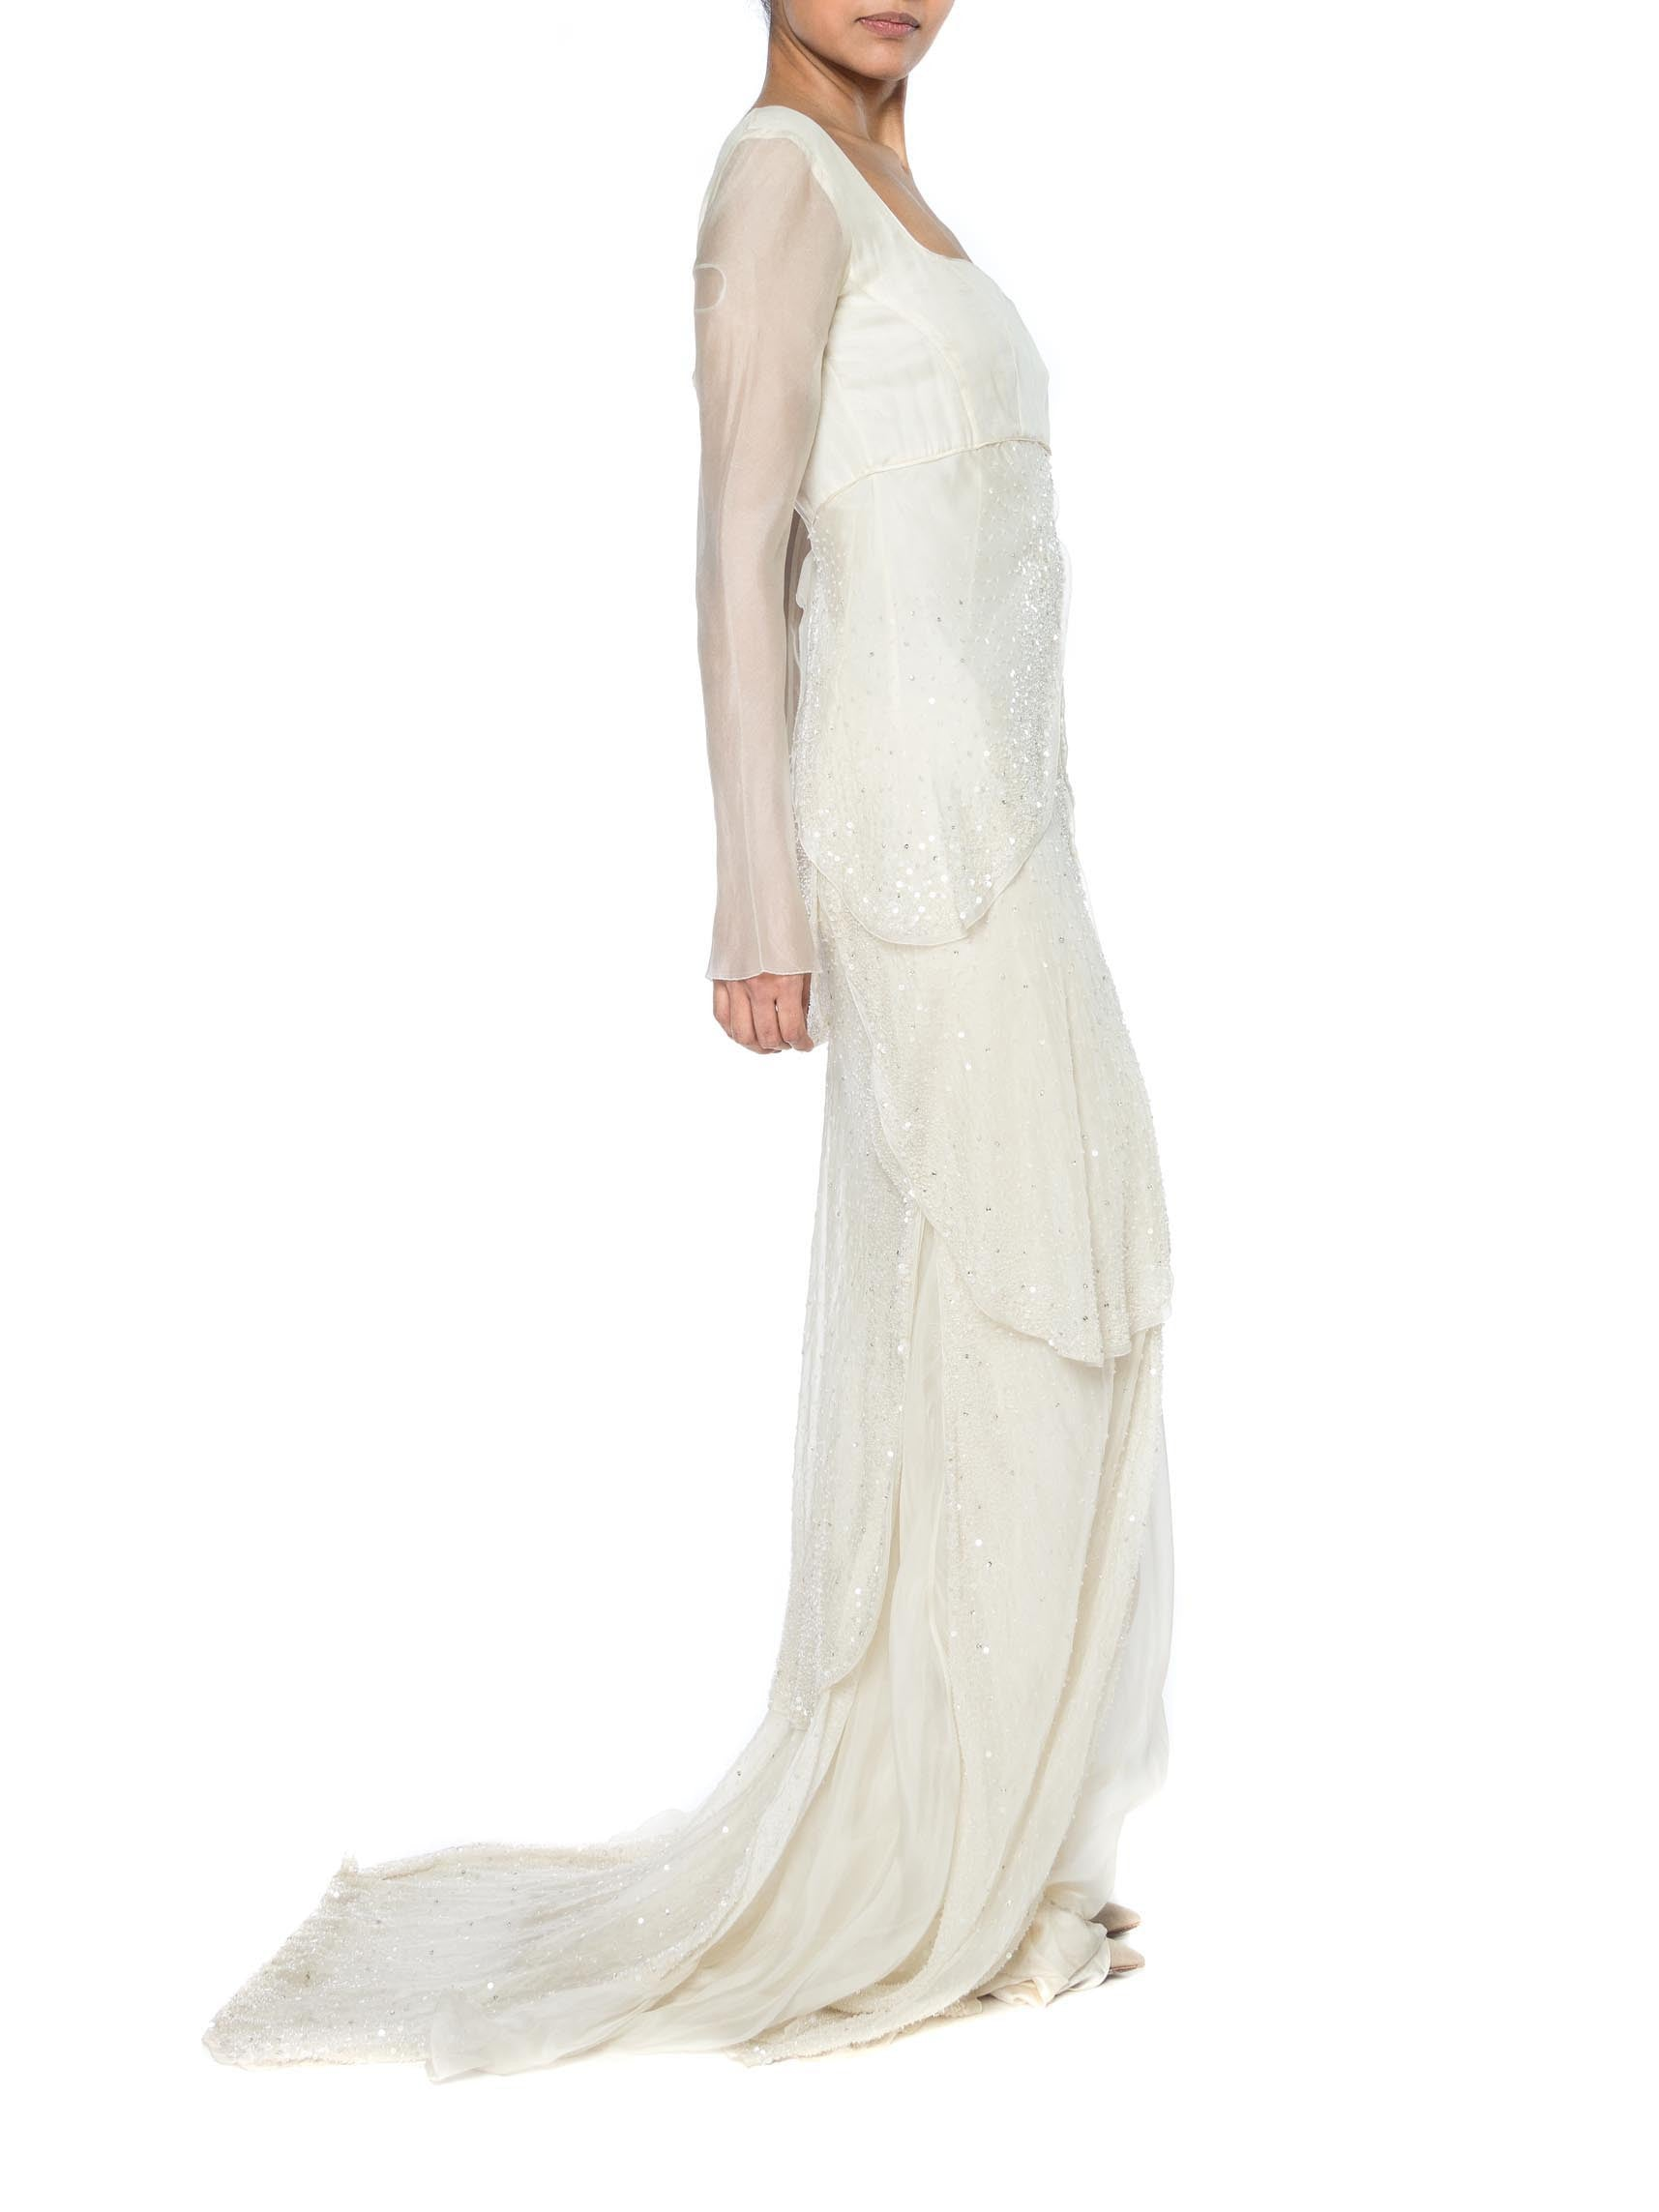 1990S Alberta Ferretti Cream Bias Cut Silk Charmeuse & Organza Medieval Inspired Bridal Trained Gown Covered In Beads Crystals